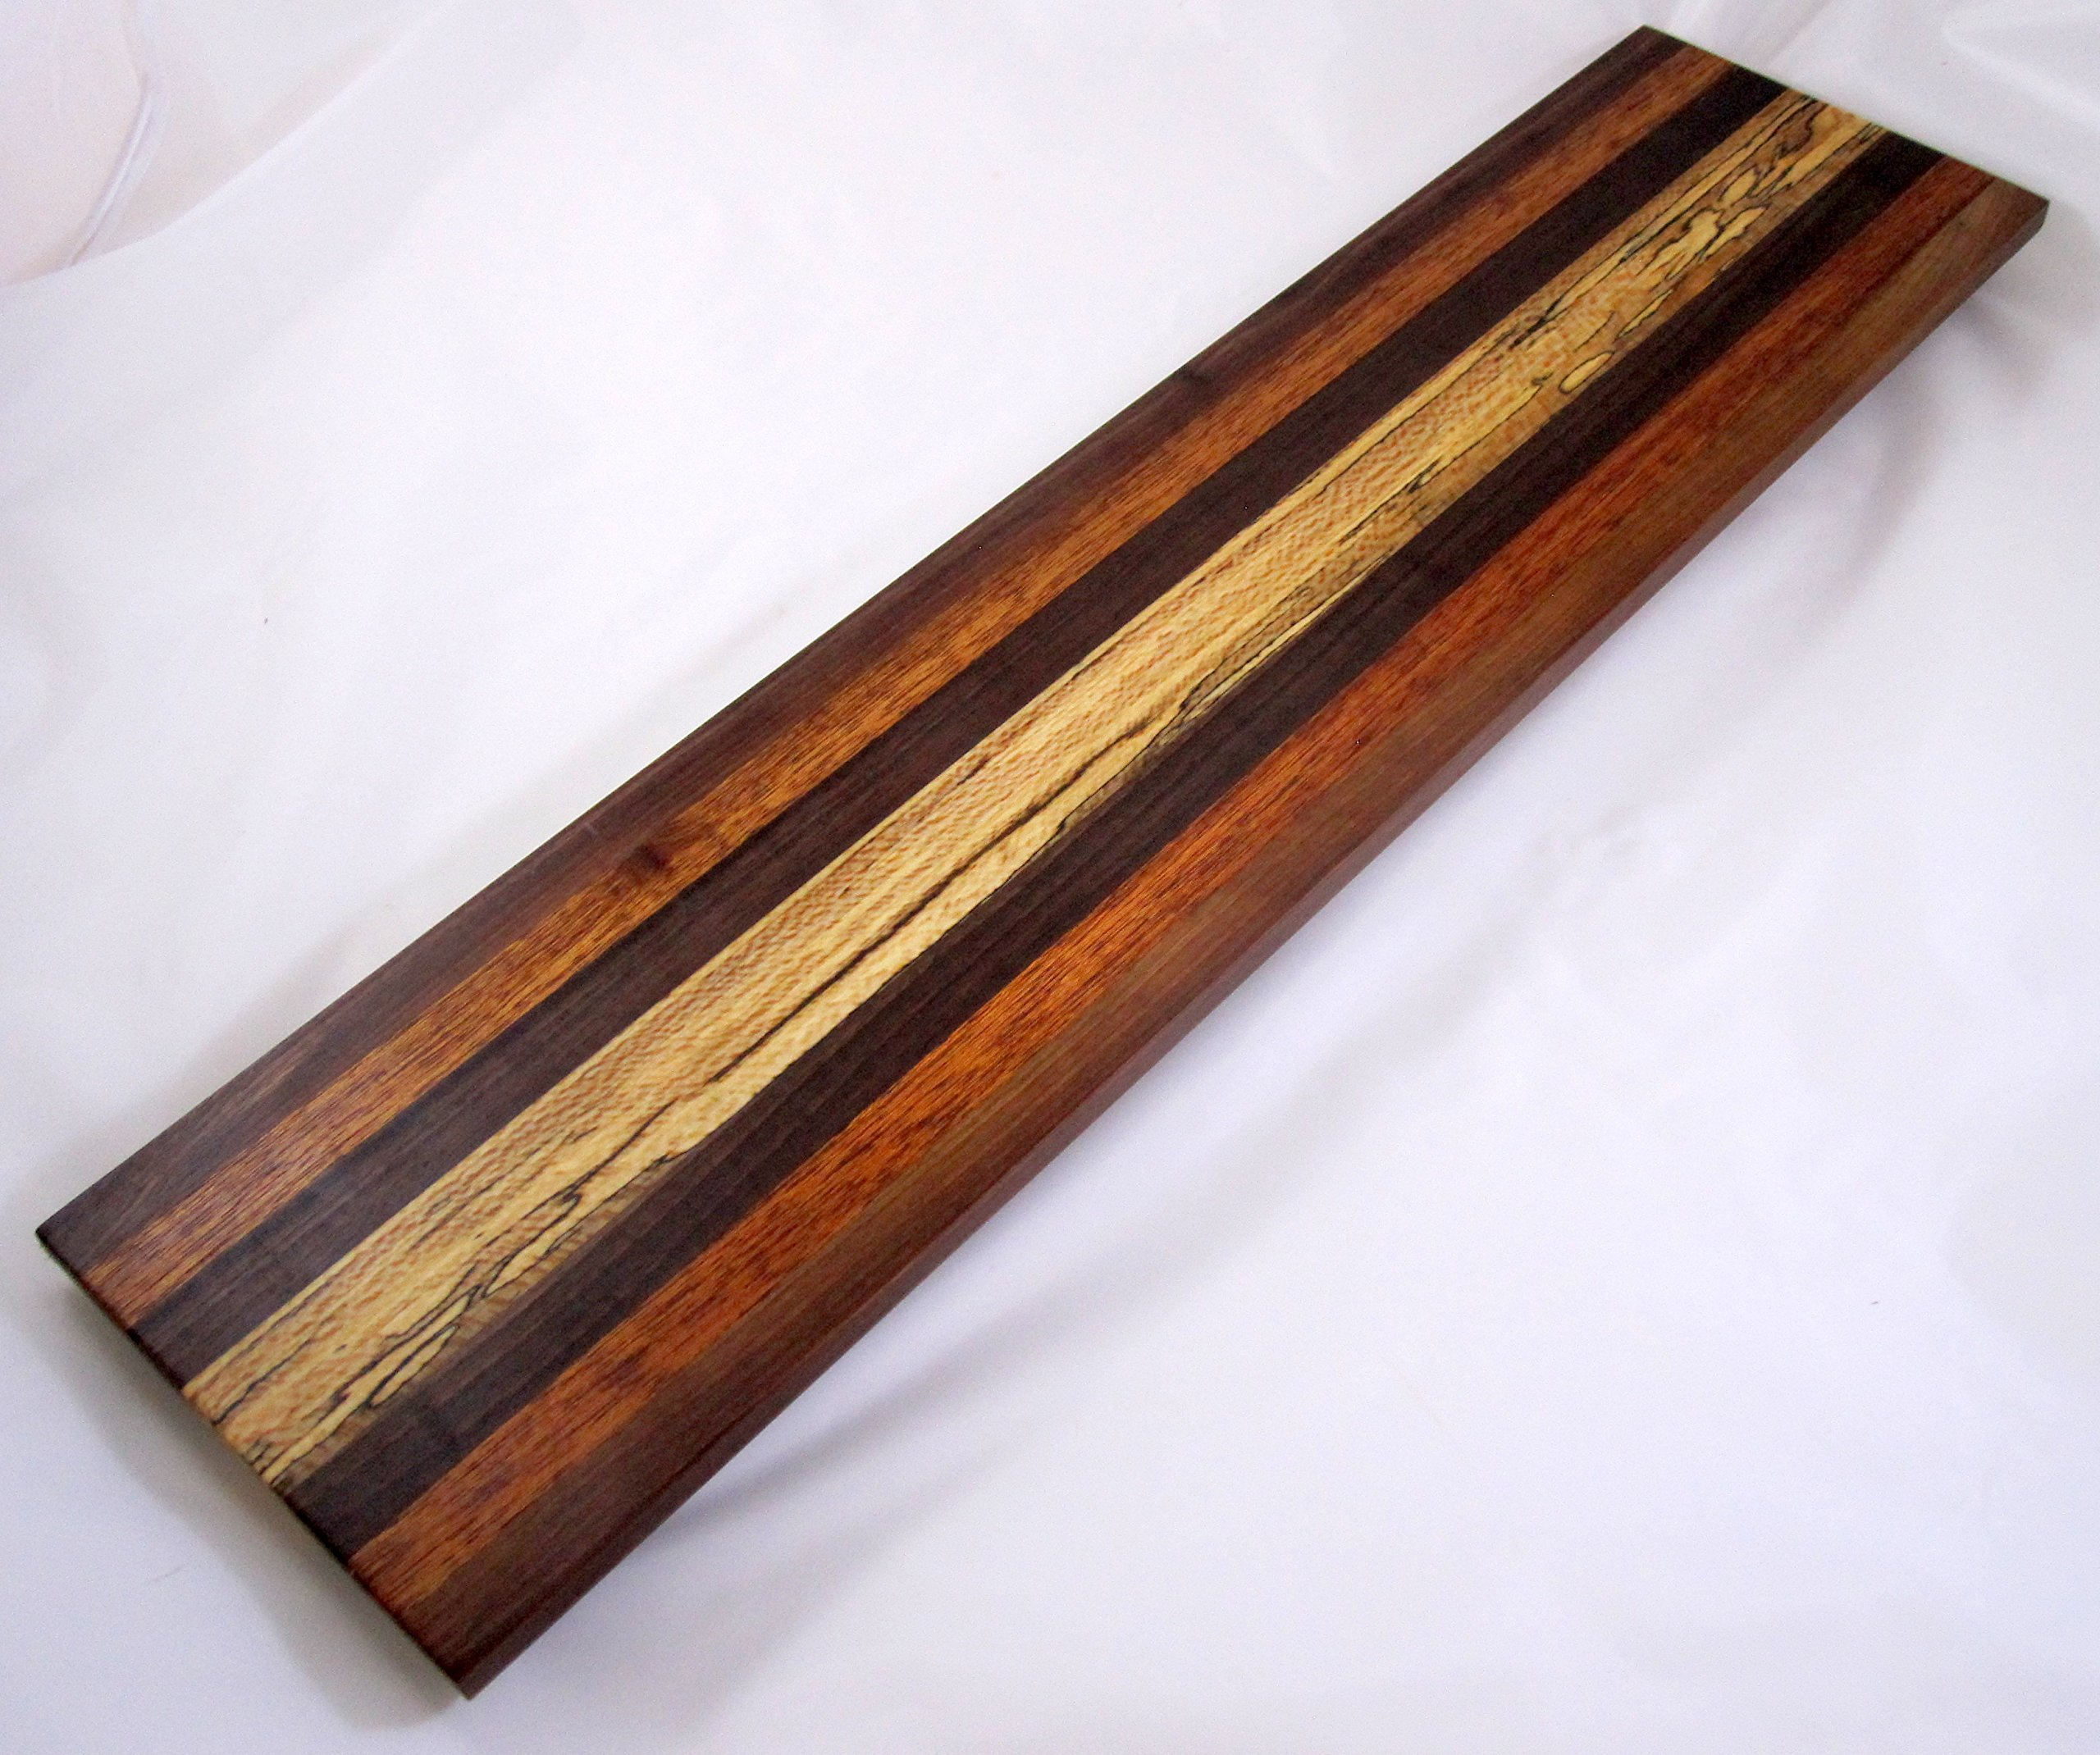 Charcuterie cheese long board #A55, Spalted Maple serving piece or cutting board by Sapper Woodworking